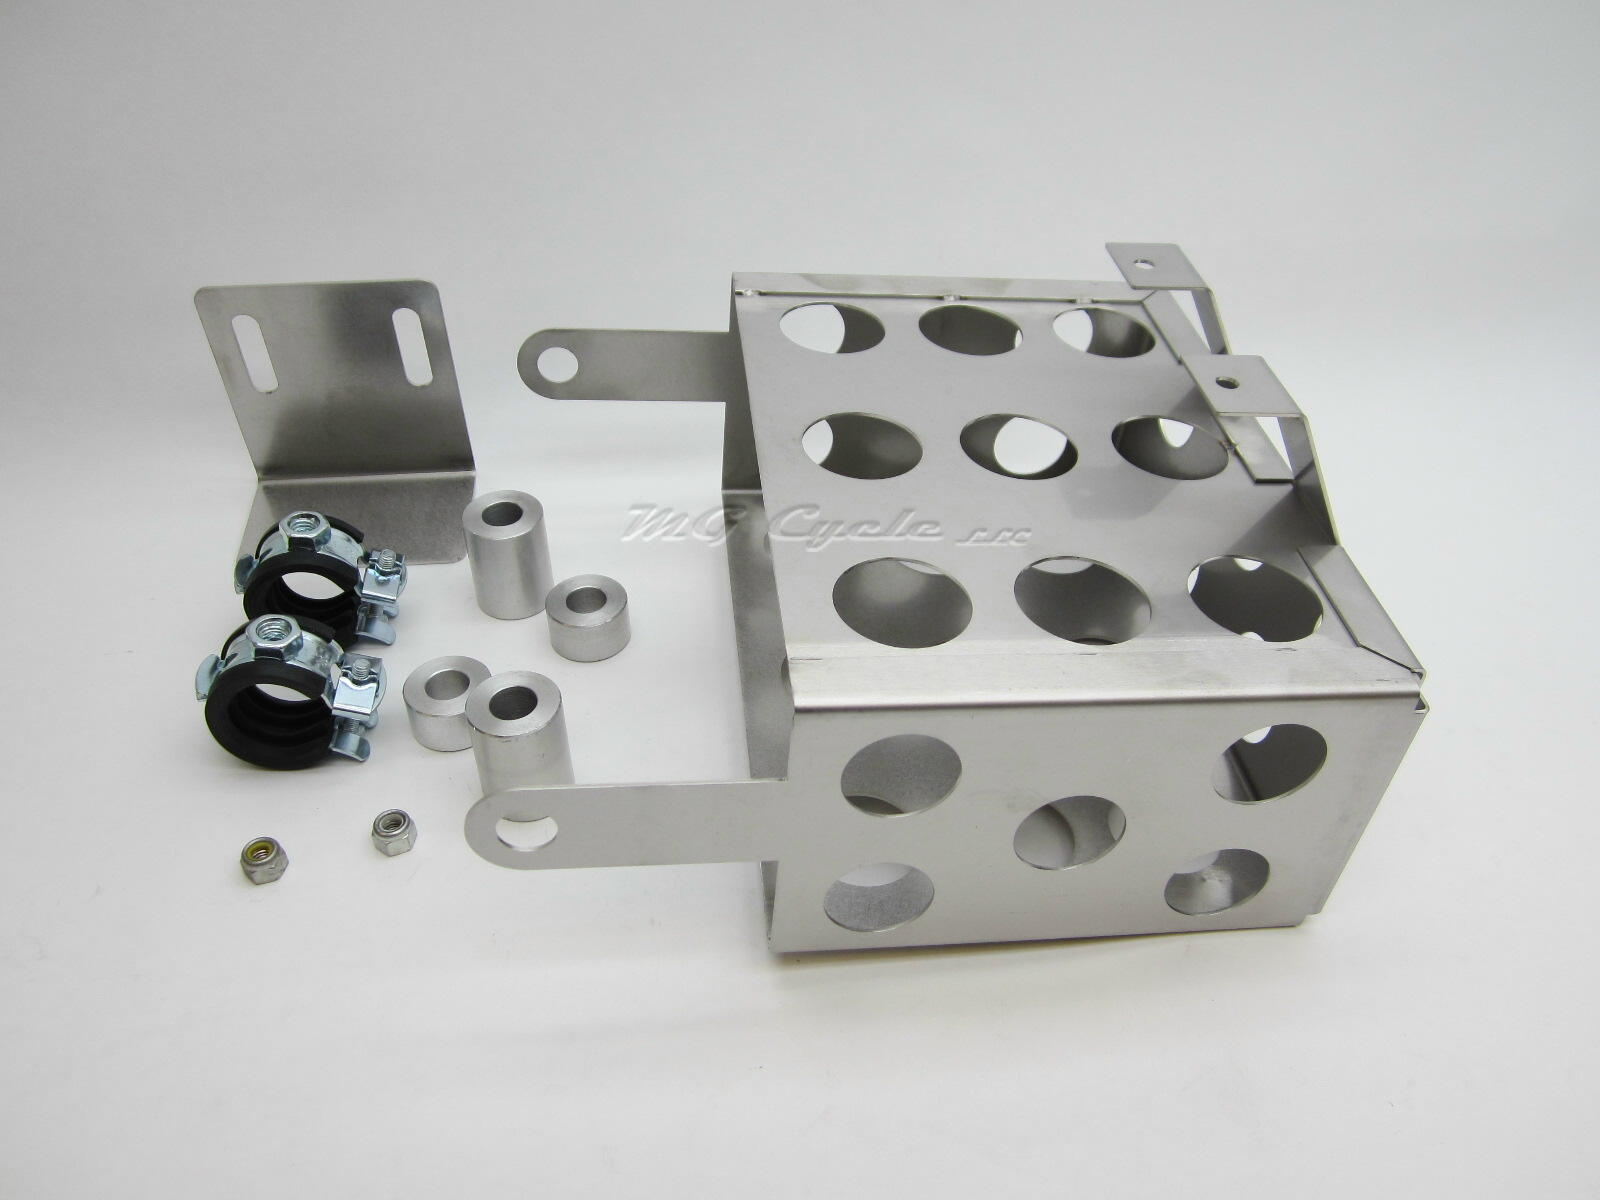 remote battery box, stainless steel